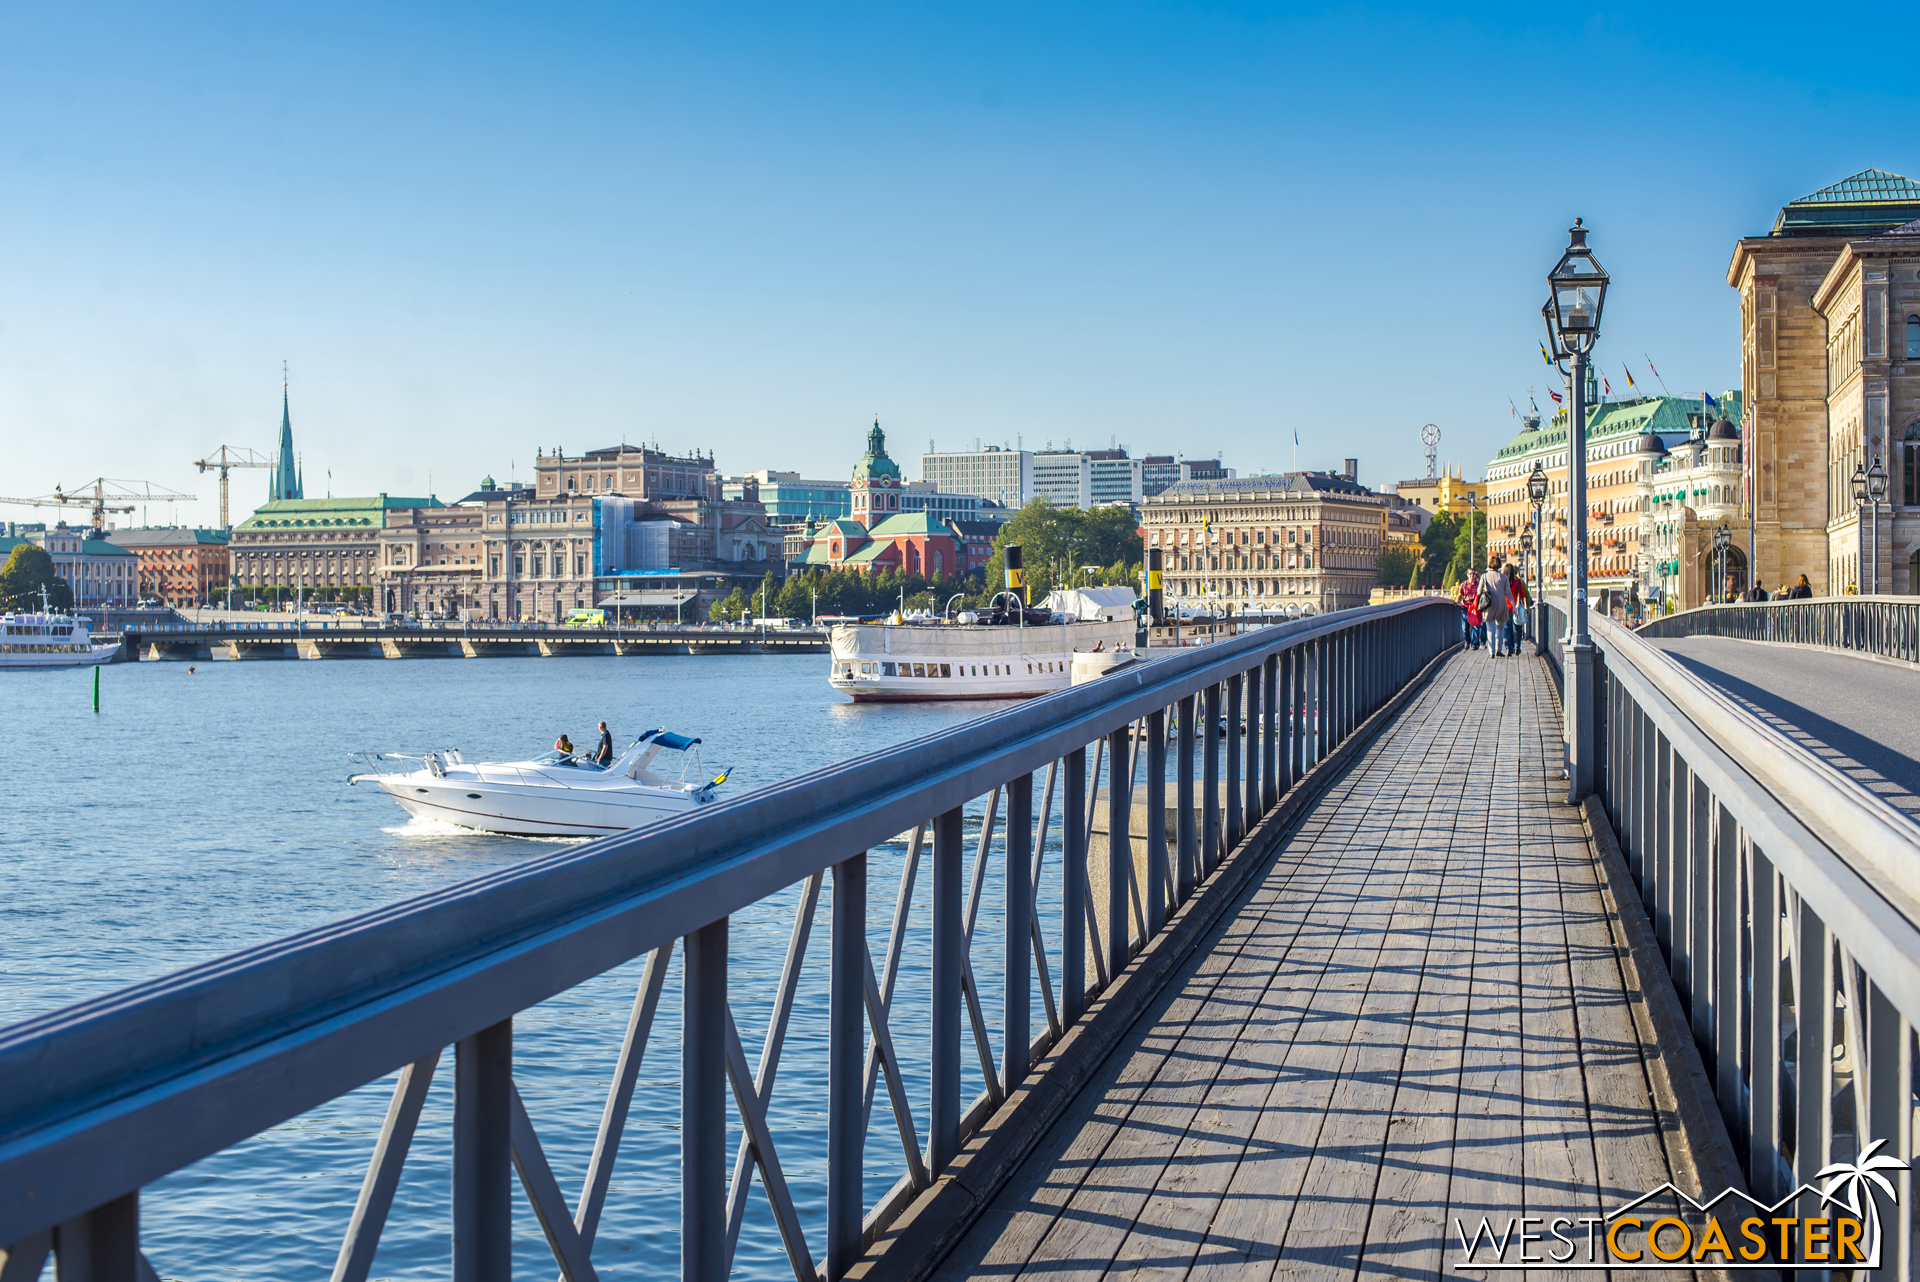 A stroll along the photogenic waterfront of Norrmalm by the Grand Hotel Stockholm features pricey properties and beautiful sights.